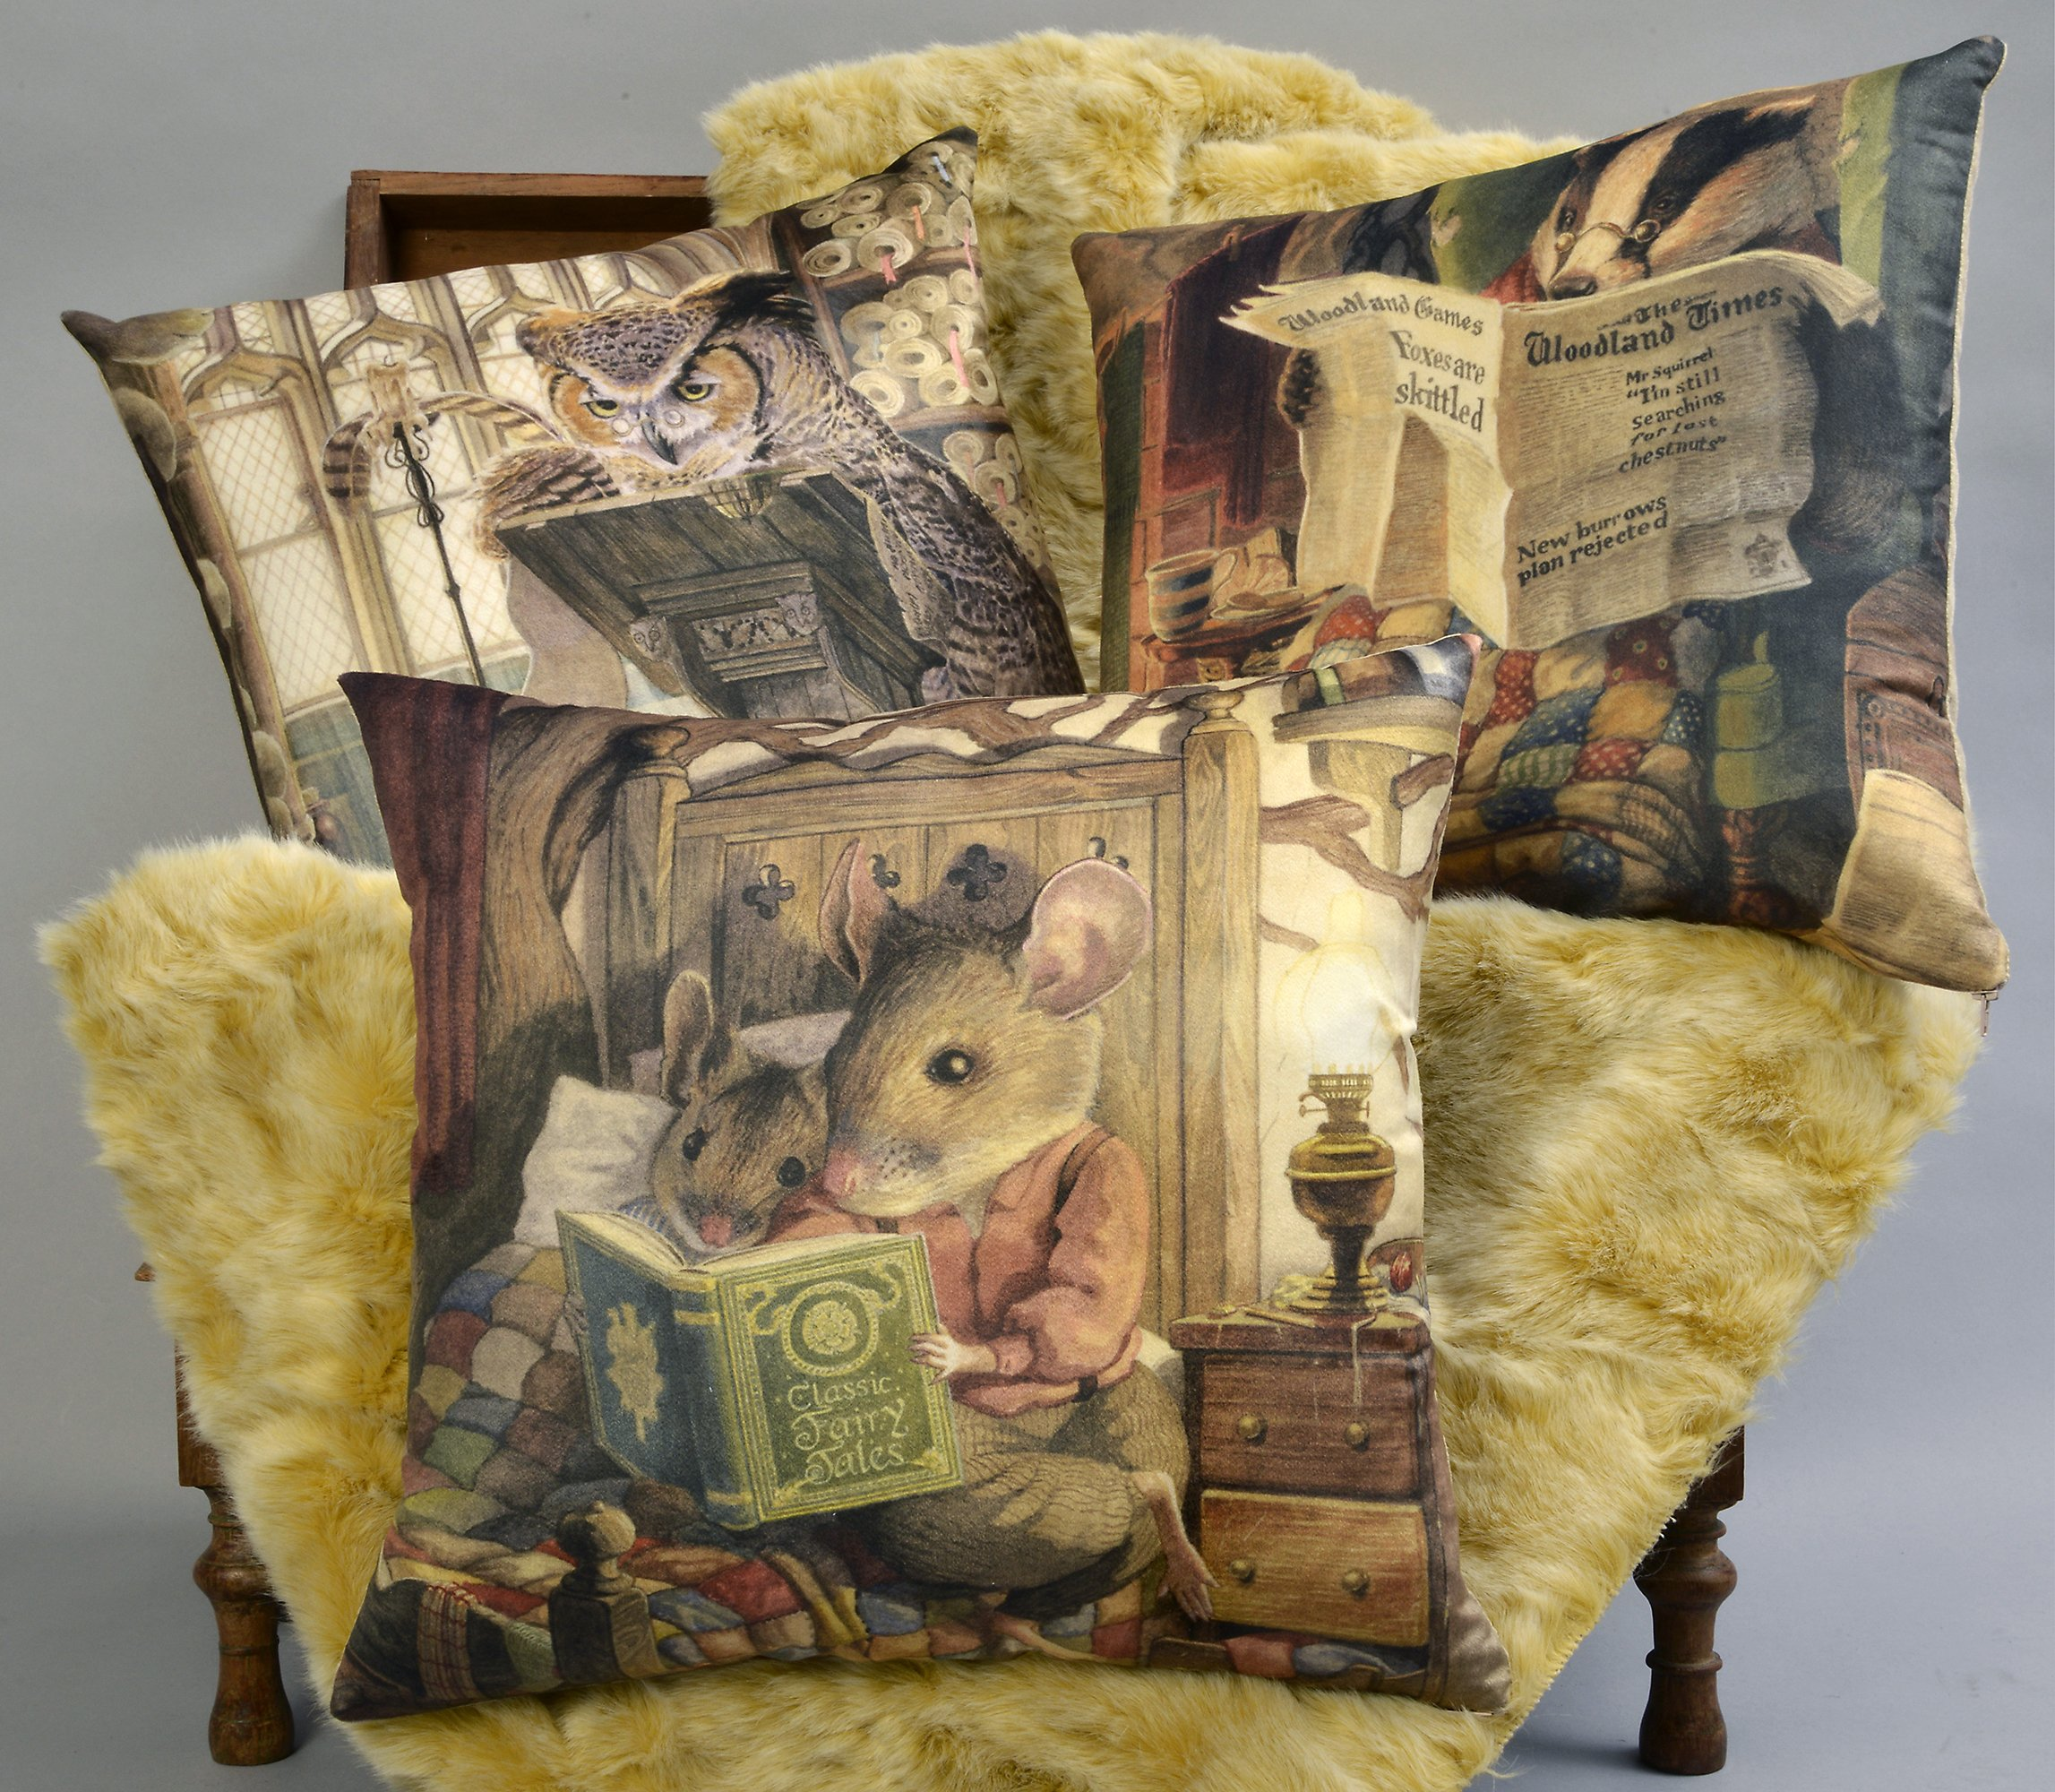 ADORABELLA Pantomime Animals Collection - Soft Touch Velvet Printed Pillow - Evening 17'' x 17'' Square Throw Pillow Home Decor Scatter Cushion - Complete With Insert by ADORABELLA (Image #4)